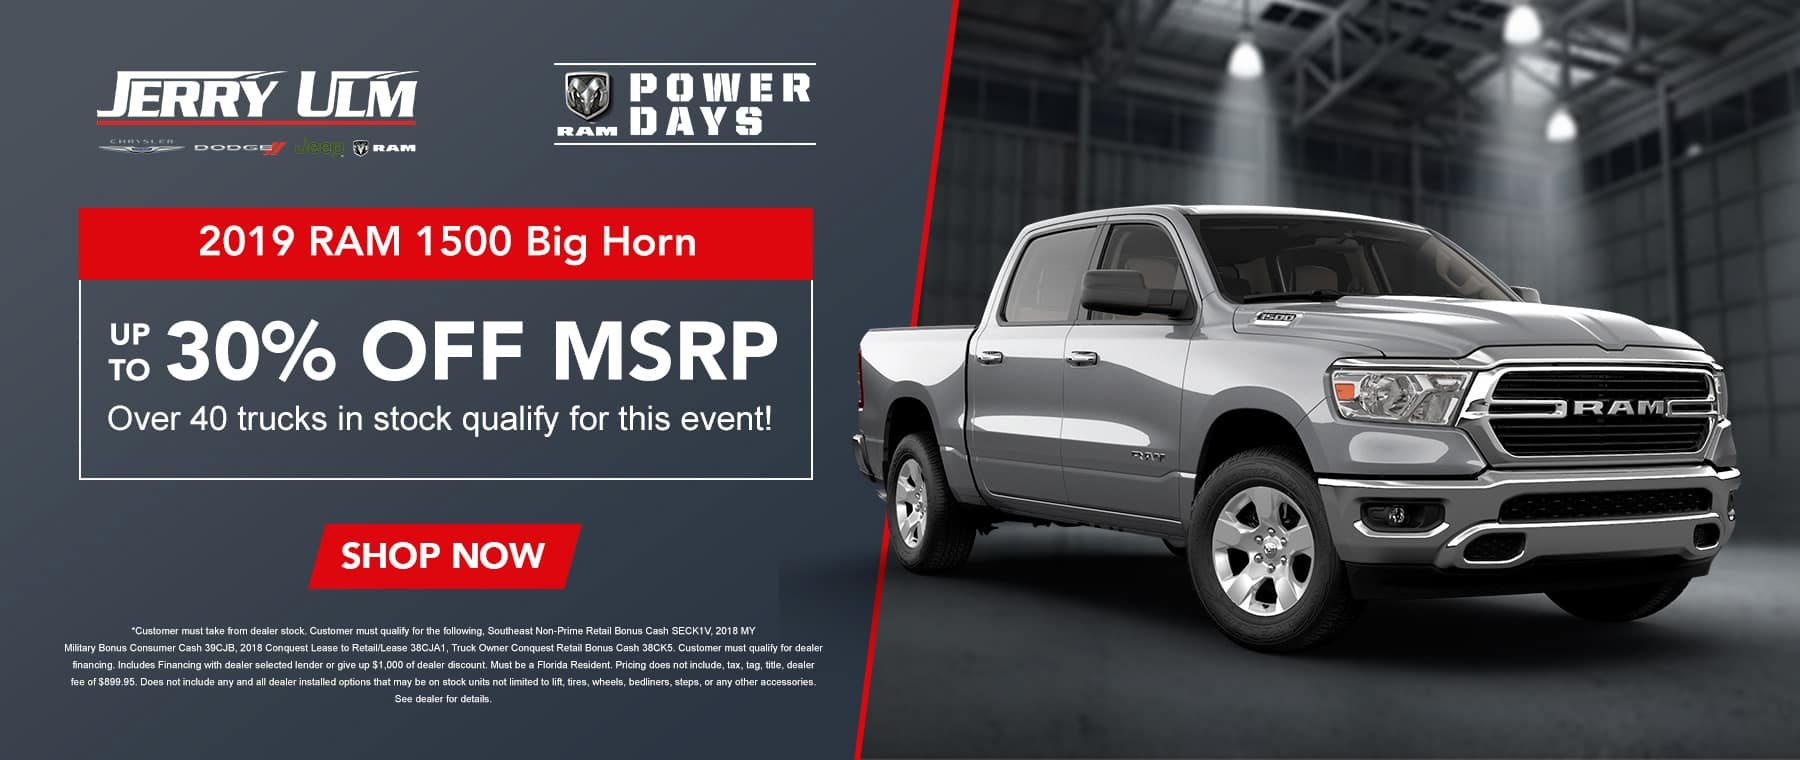 30% Off Msrp On 2019 RAM 1500 Big Horn